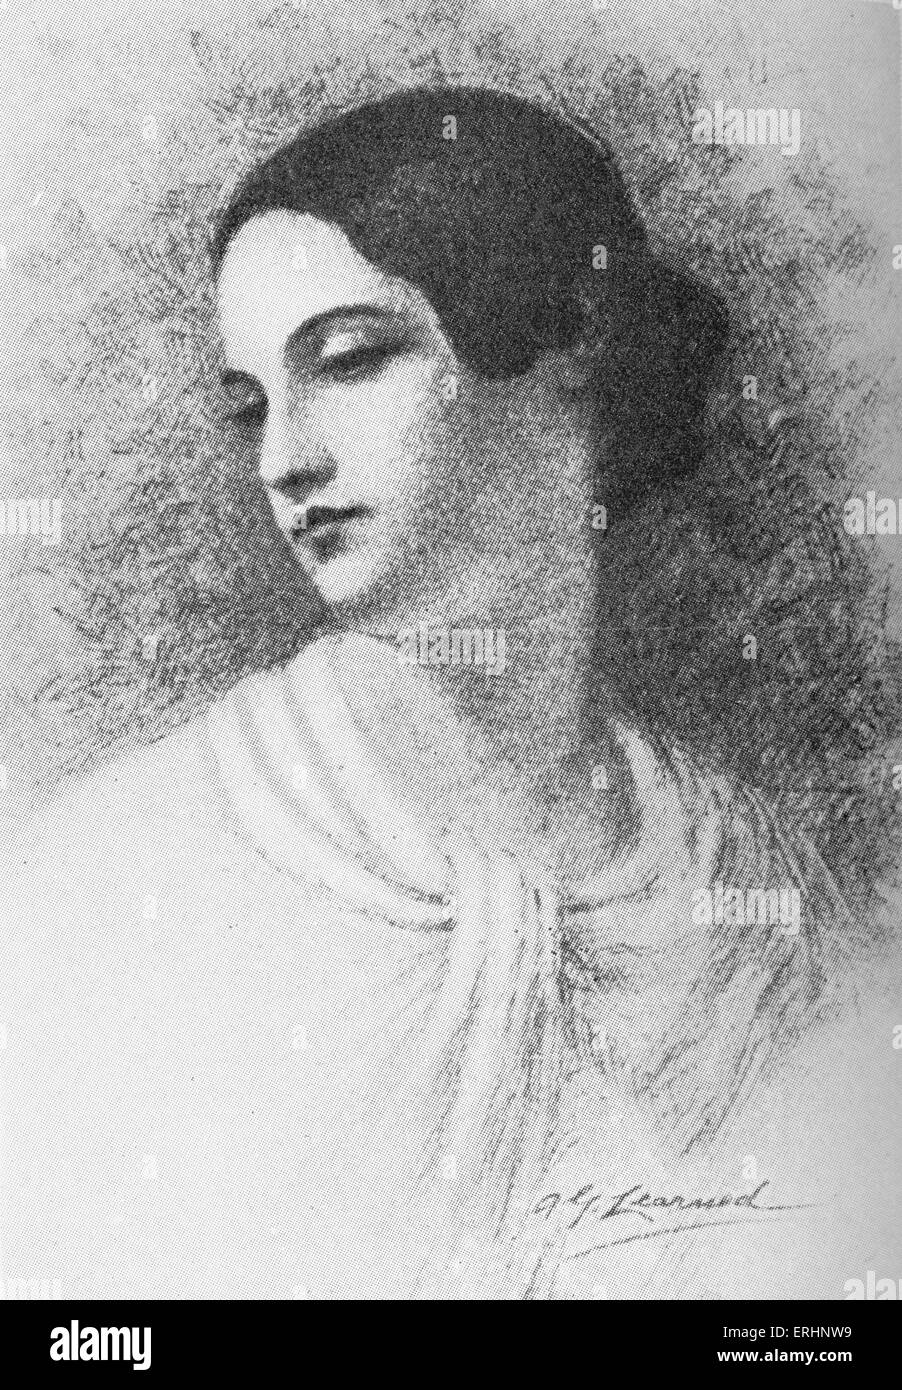 virginia poe in wife of edgar allen poe the american poet wife of edgar allen poe the american poet short story writer editor and literary critic 22